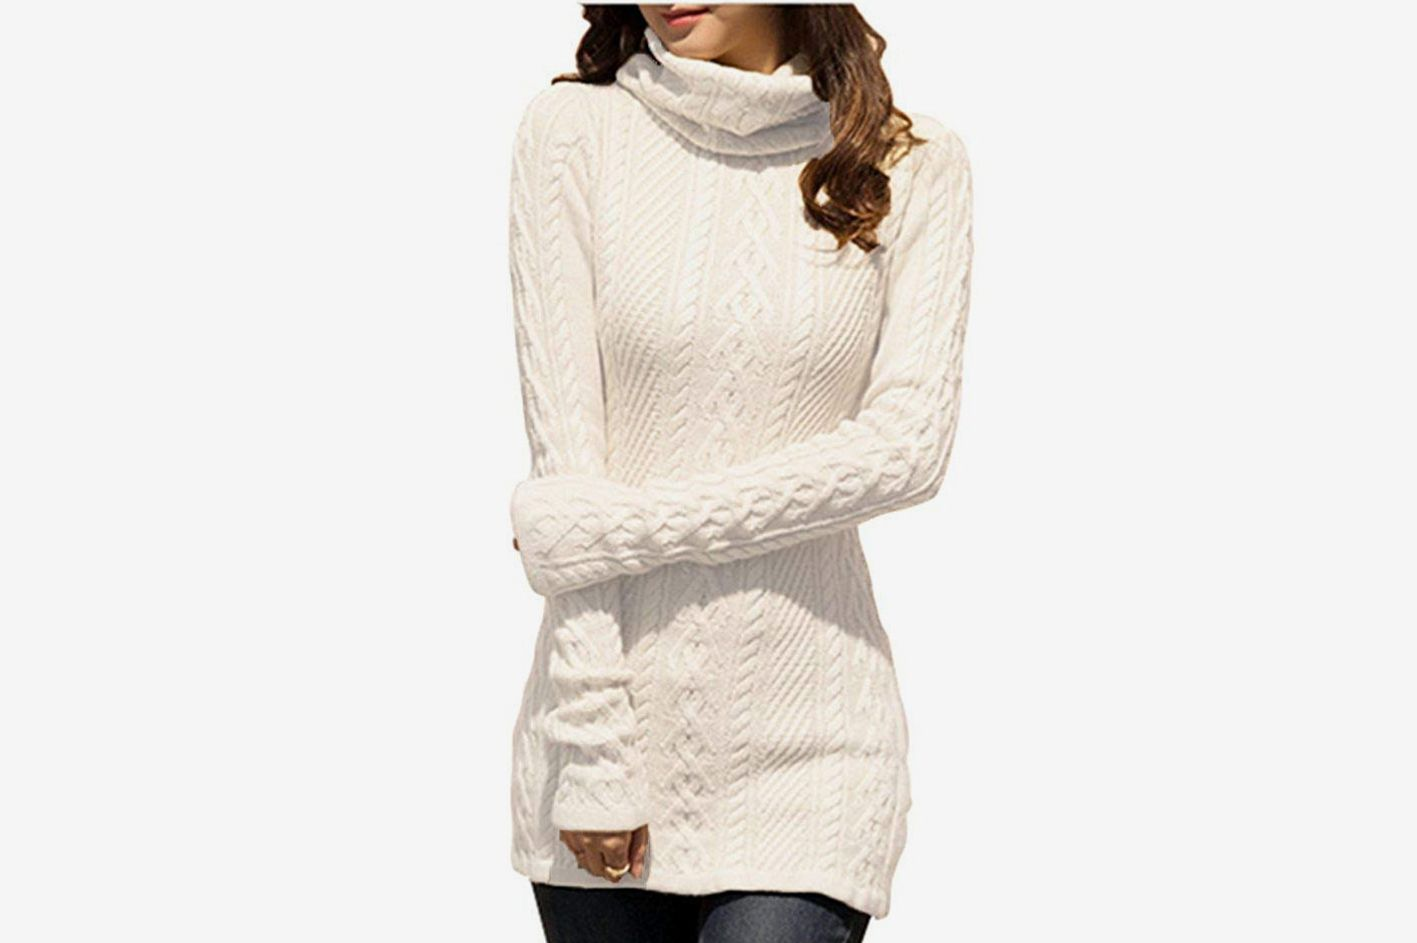 5402093fda v28 Women Polo Neck Knit Stretchable Long Sleeve Slim Sweater